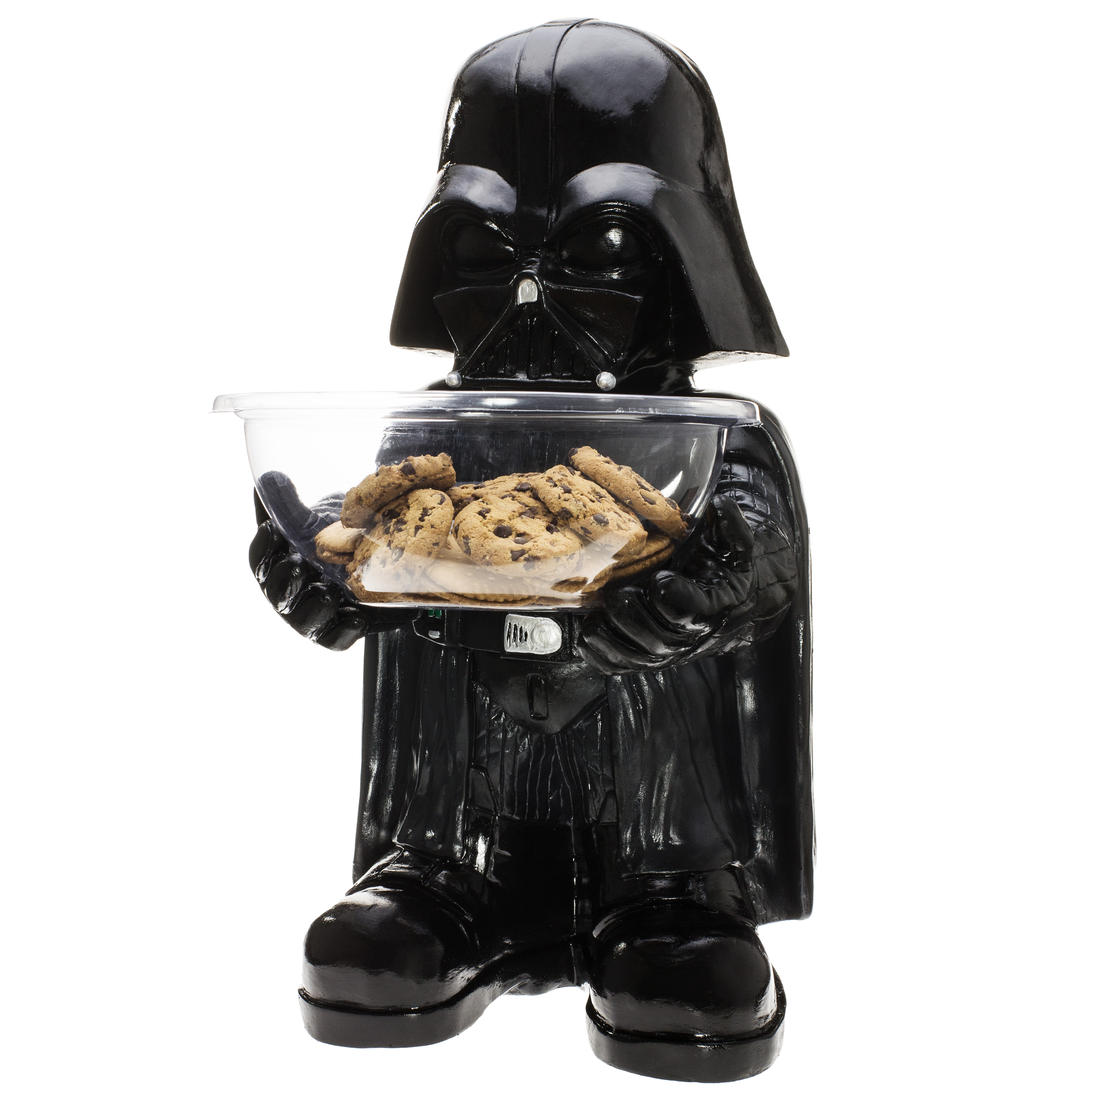 Star Wars Darth Vader Candy Holder | getDigital